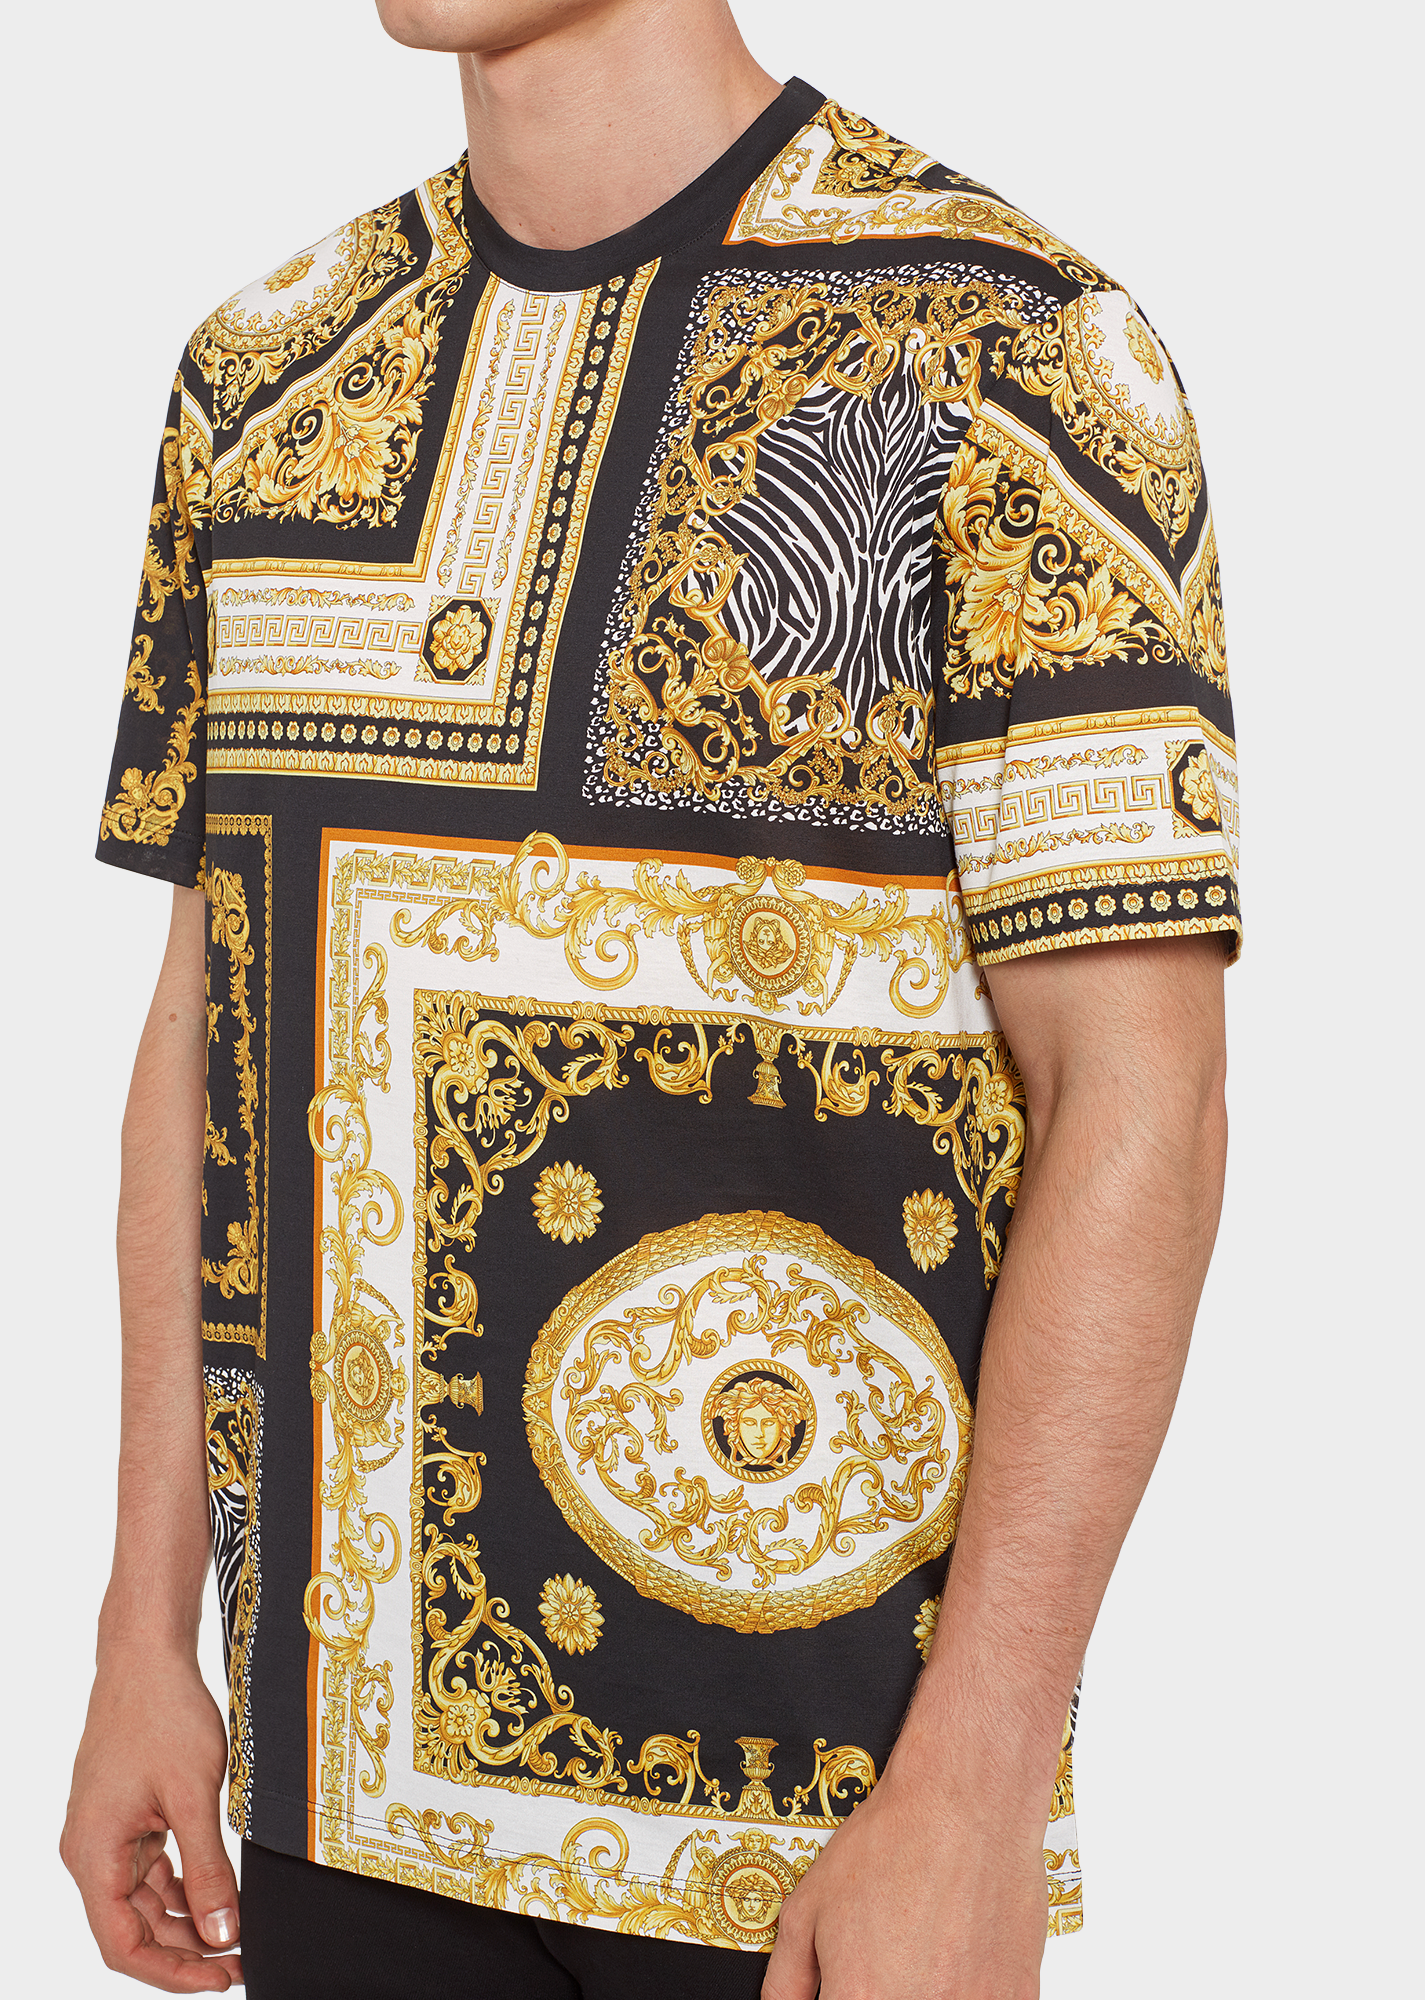 d98aa638b3 Signature 17 T-Shirt - Print T-shirts & Polos | Versace in 2019 ...